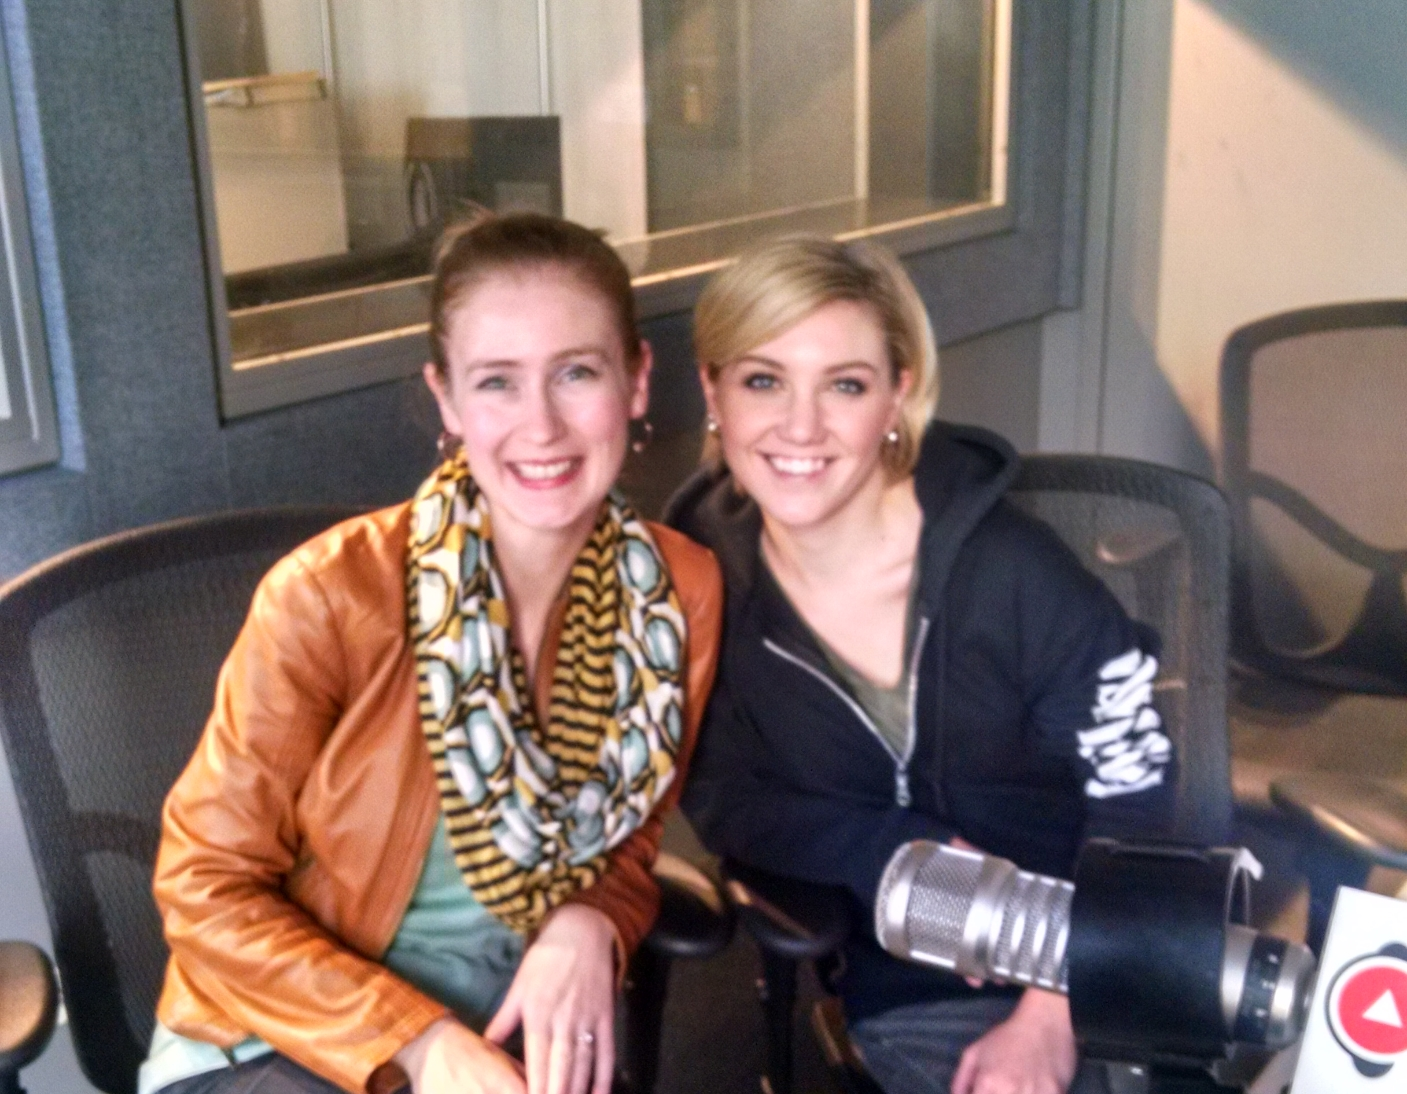 On WGN Radio with former RedEye nightlife reporter Kate Bernot